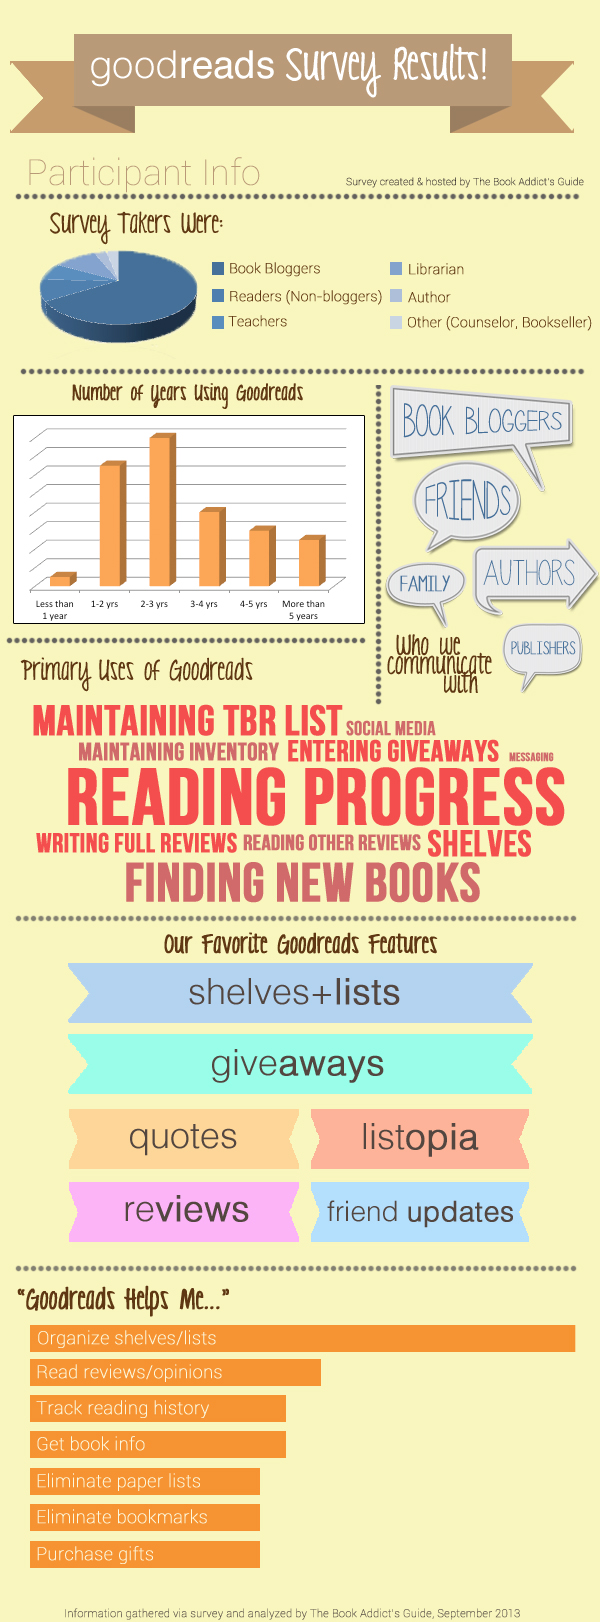 GoodreadsInfographic